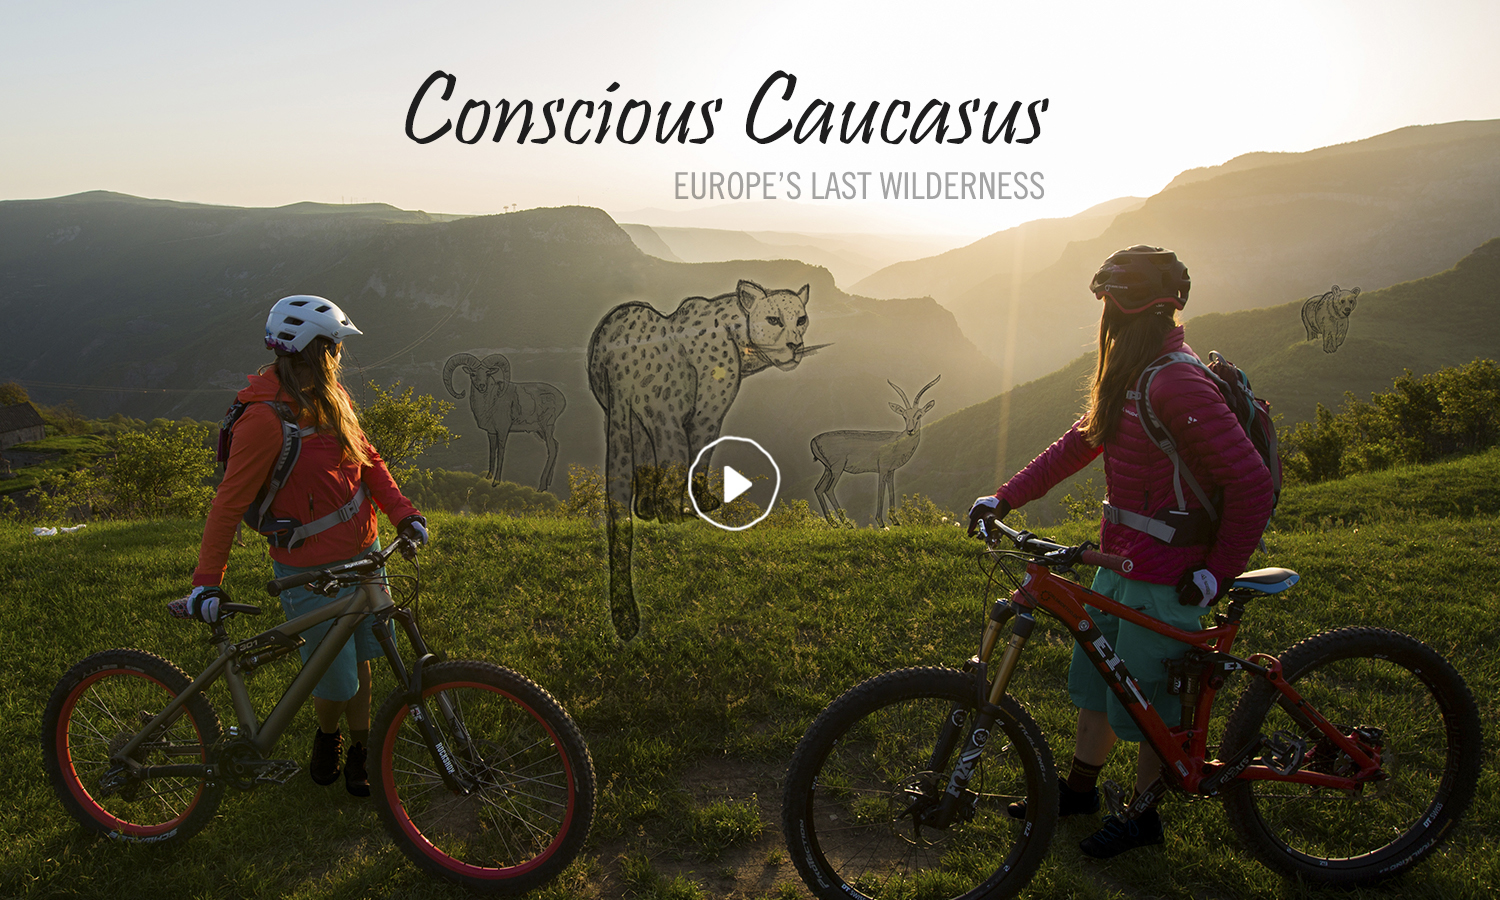 You can find informative and inspirational videos on VAUDE's YouTube channel.